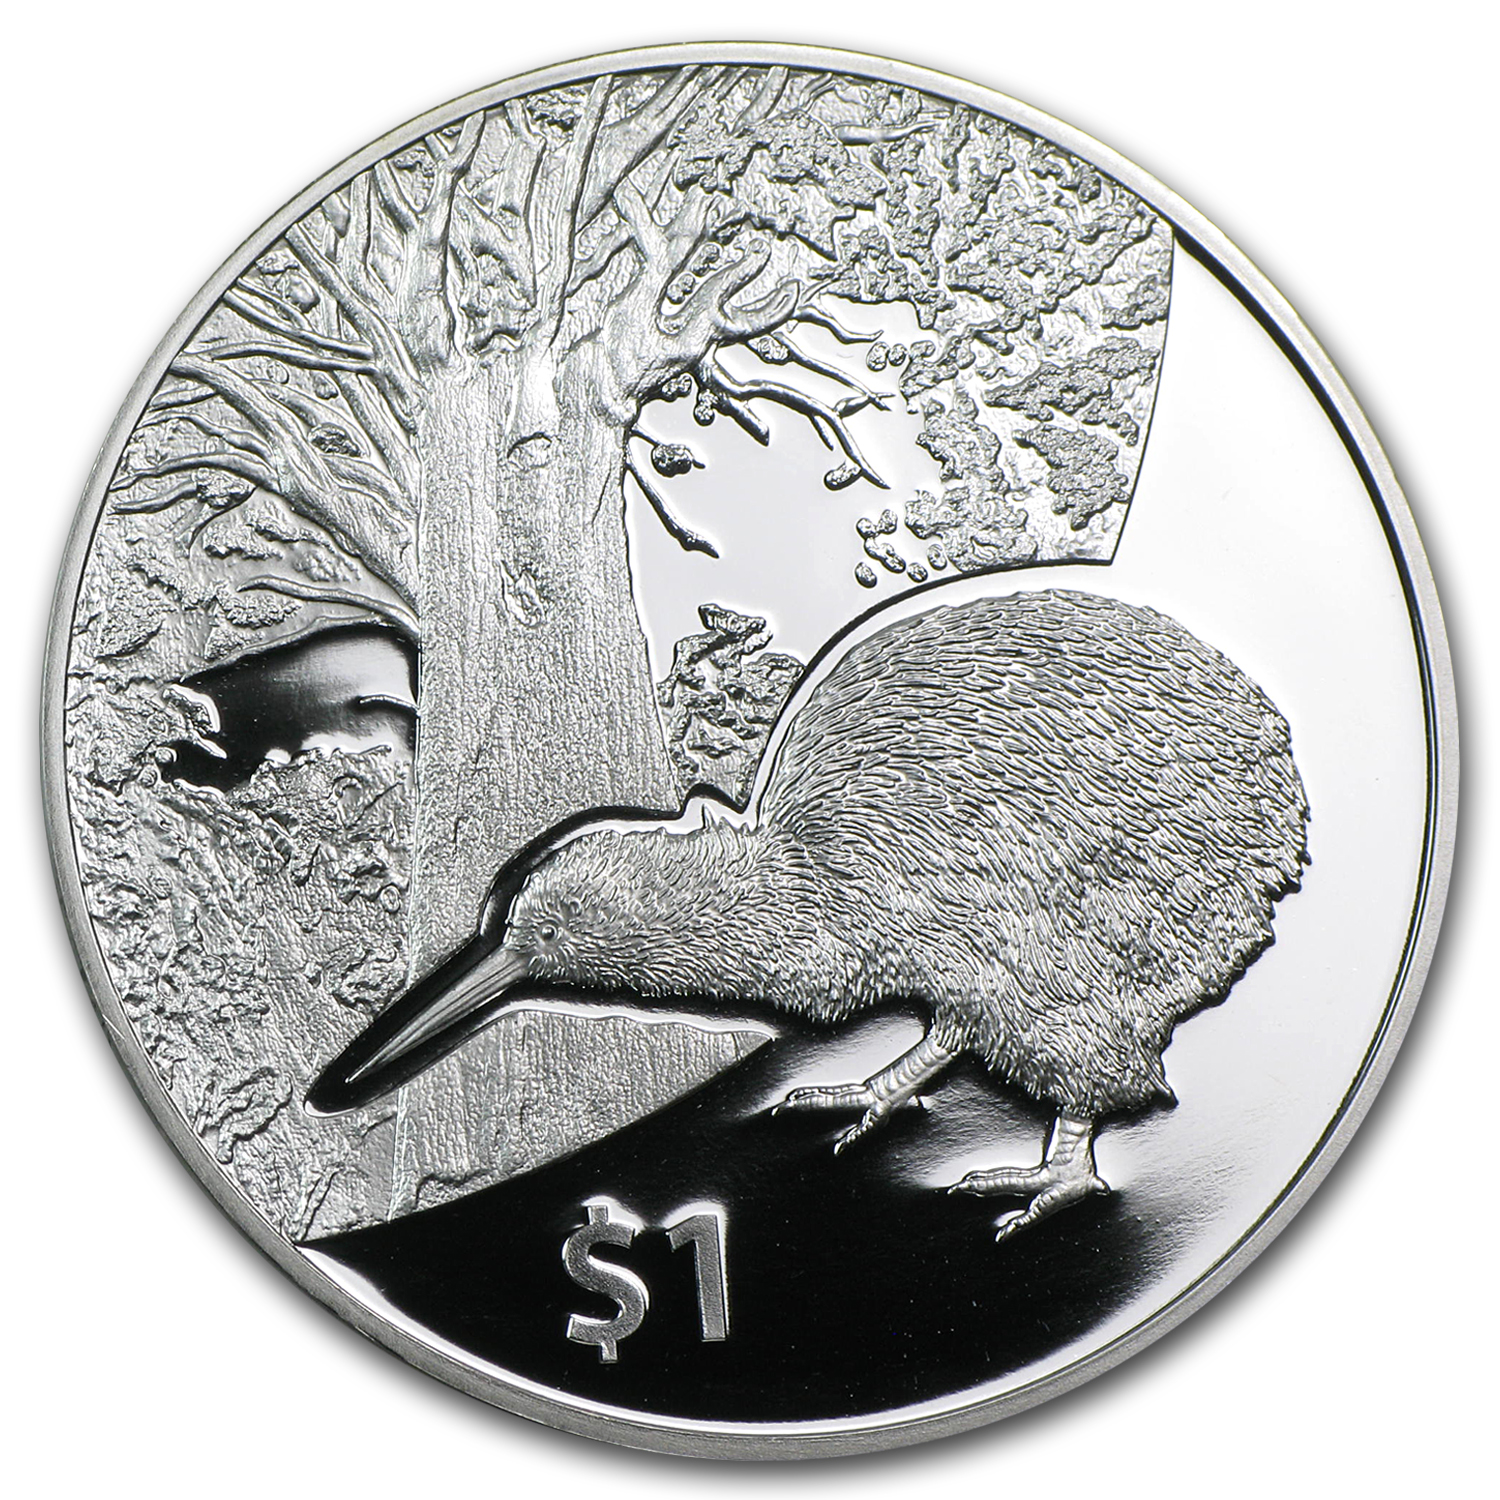 2013 New Zealand 1 oz Silver Treasures $1 Kiwi Proof